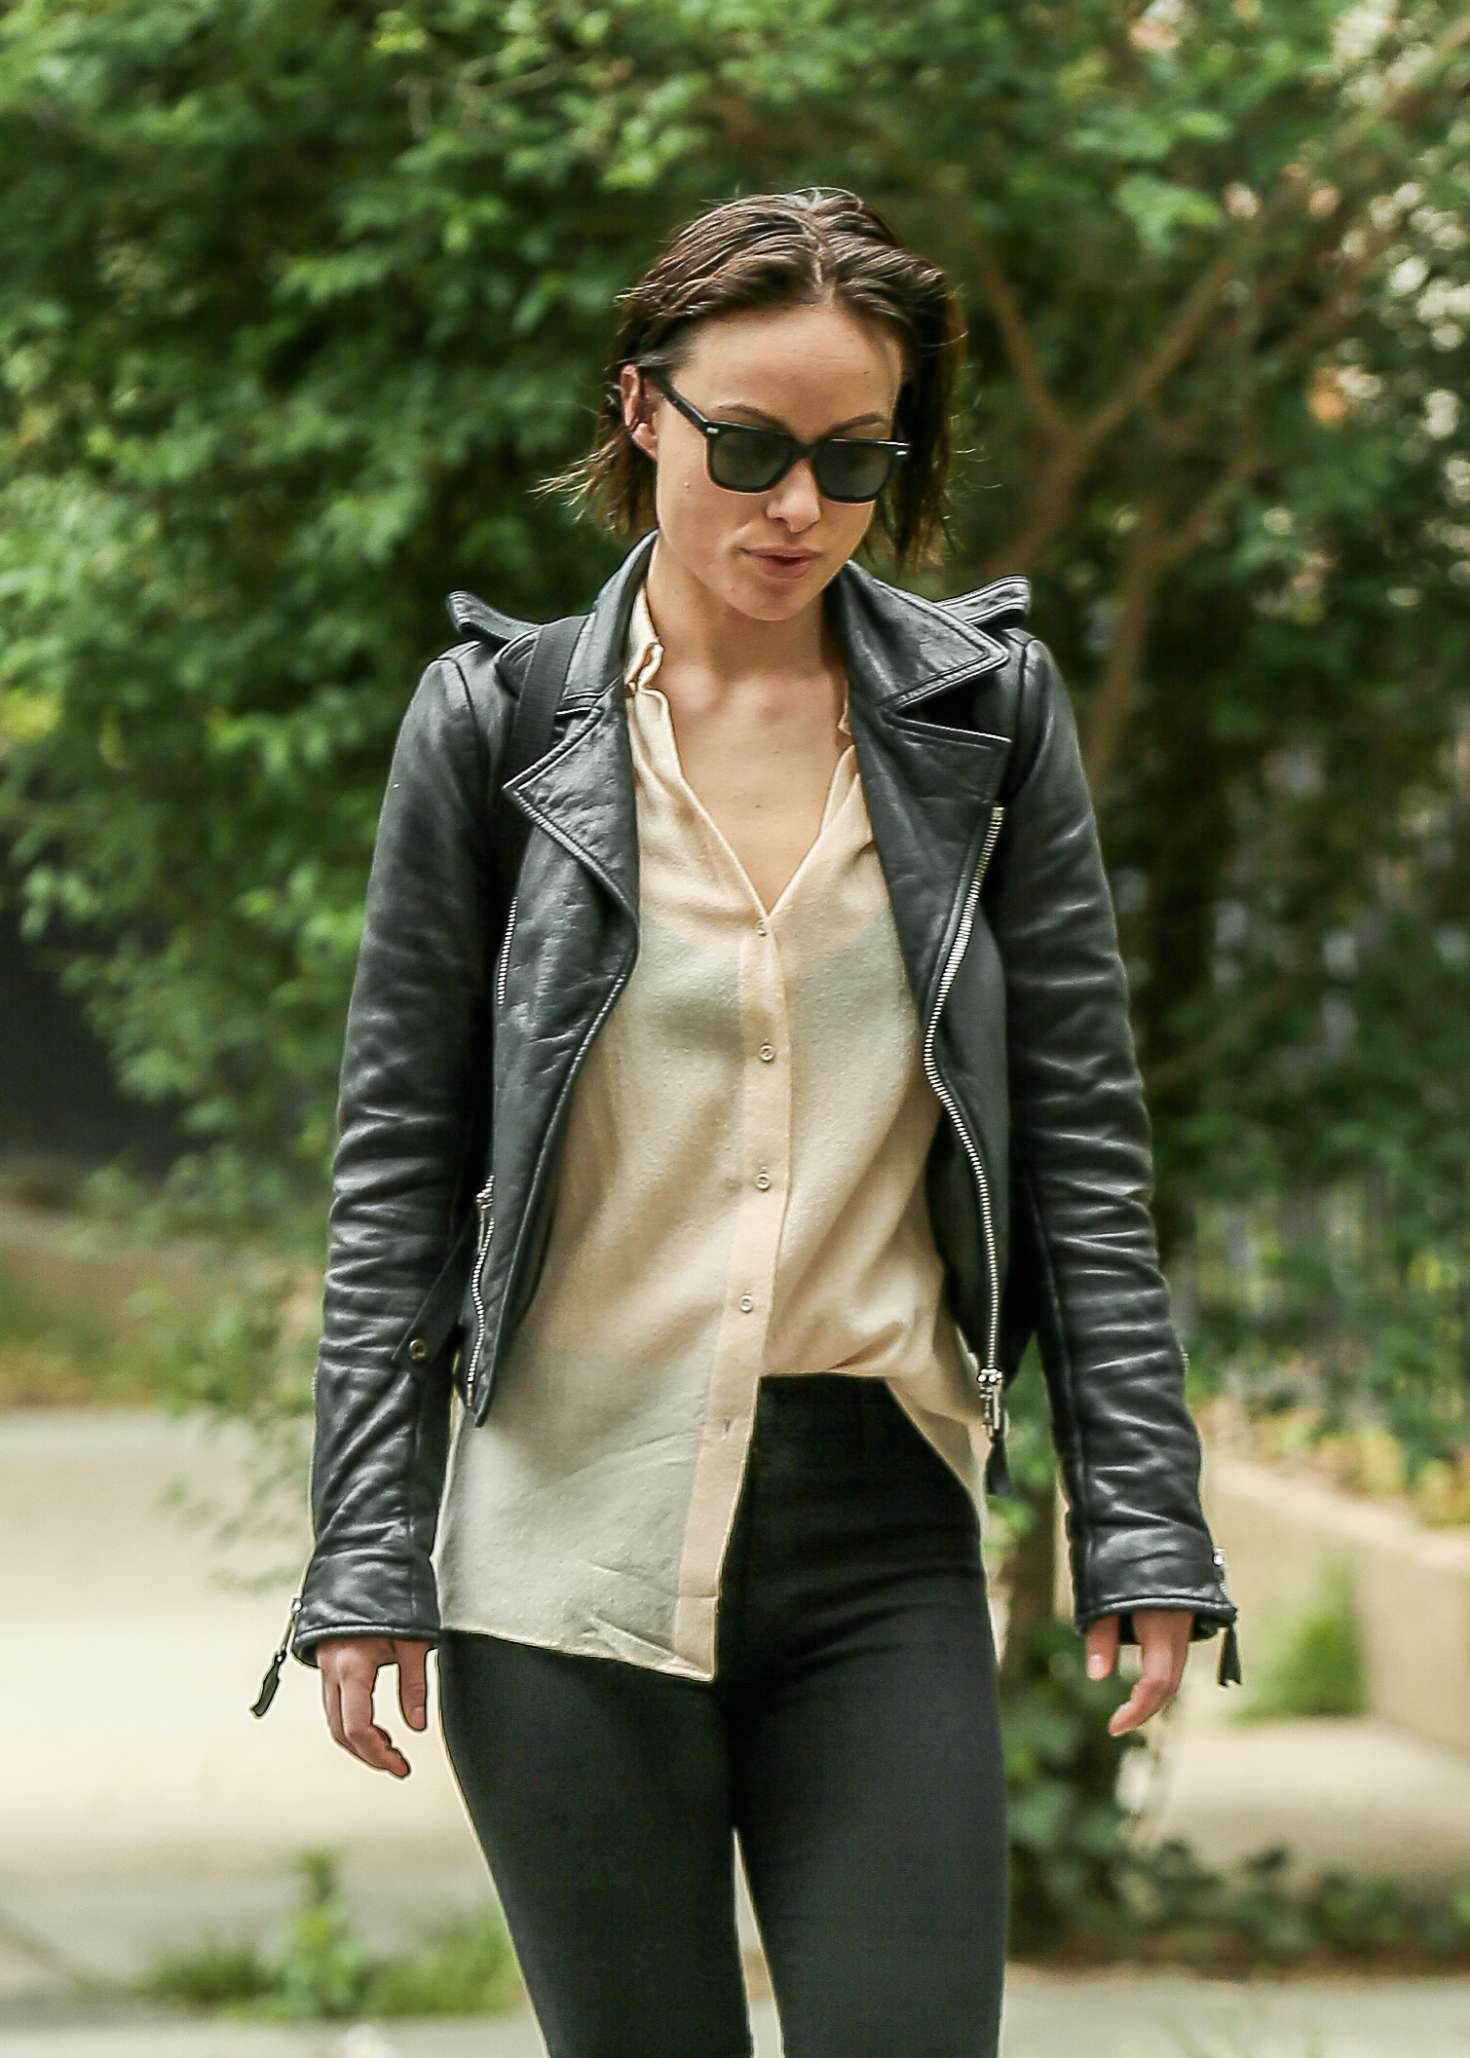 Olivia Wilde 2017 : Olivia Wilde out in New York City -08